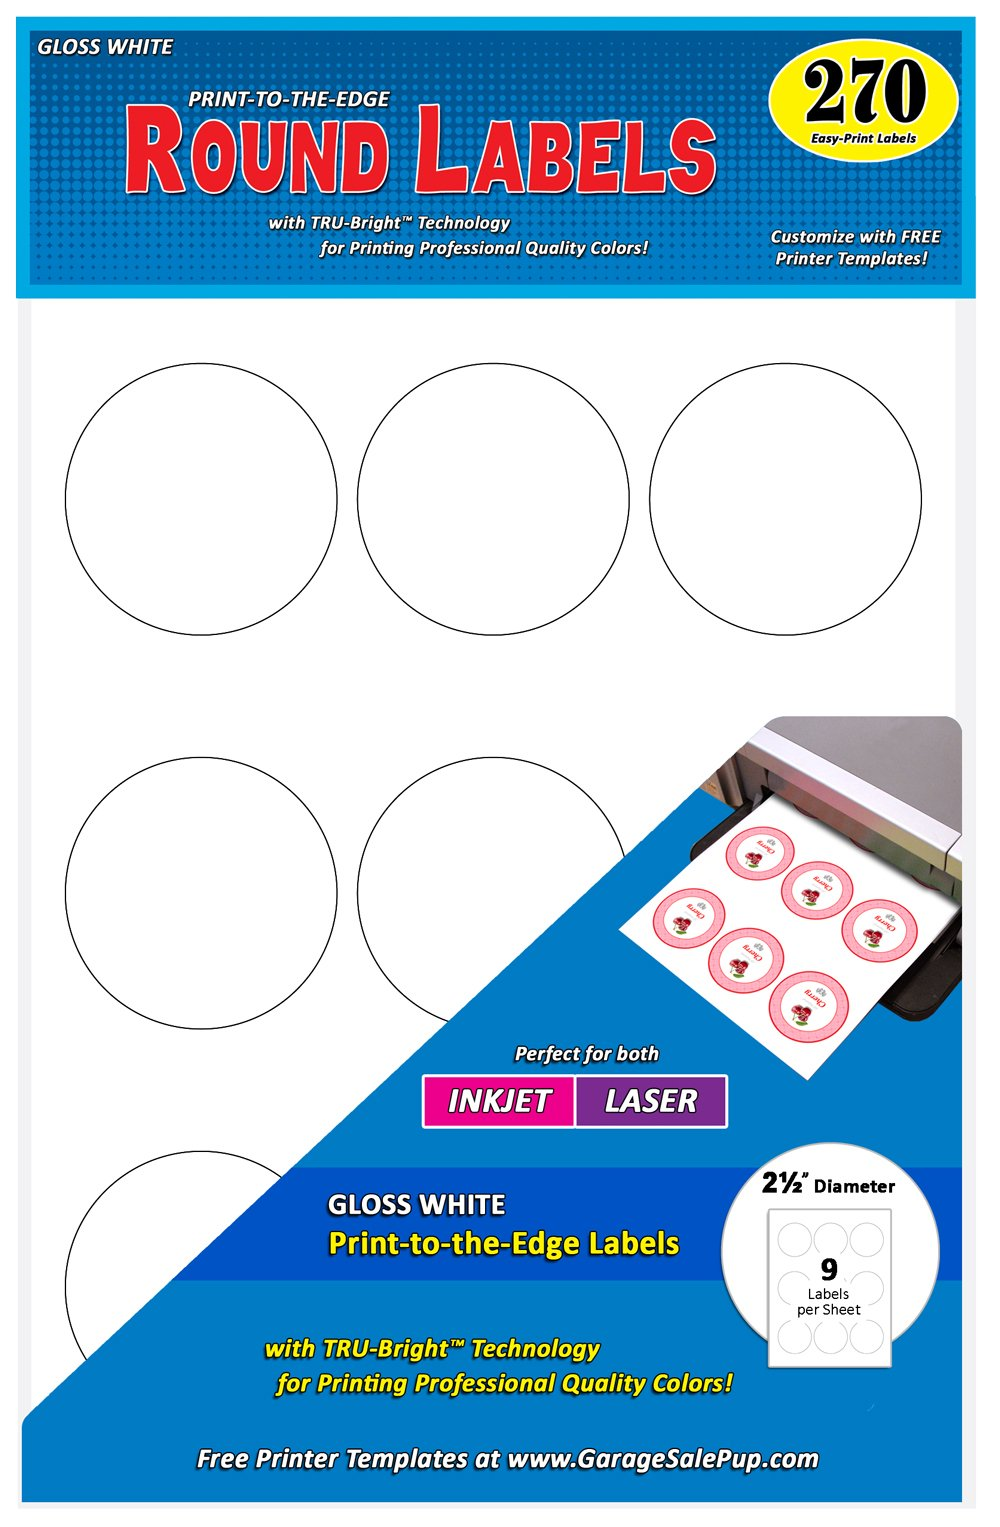 Pack of 270 Permanent Print-To-The-Edge Round Labels, Laser/InkJet, 2.5-Inch, Glossy White